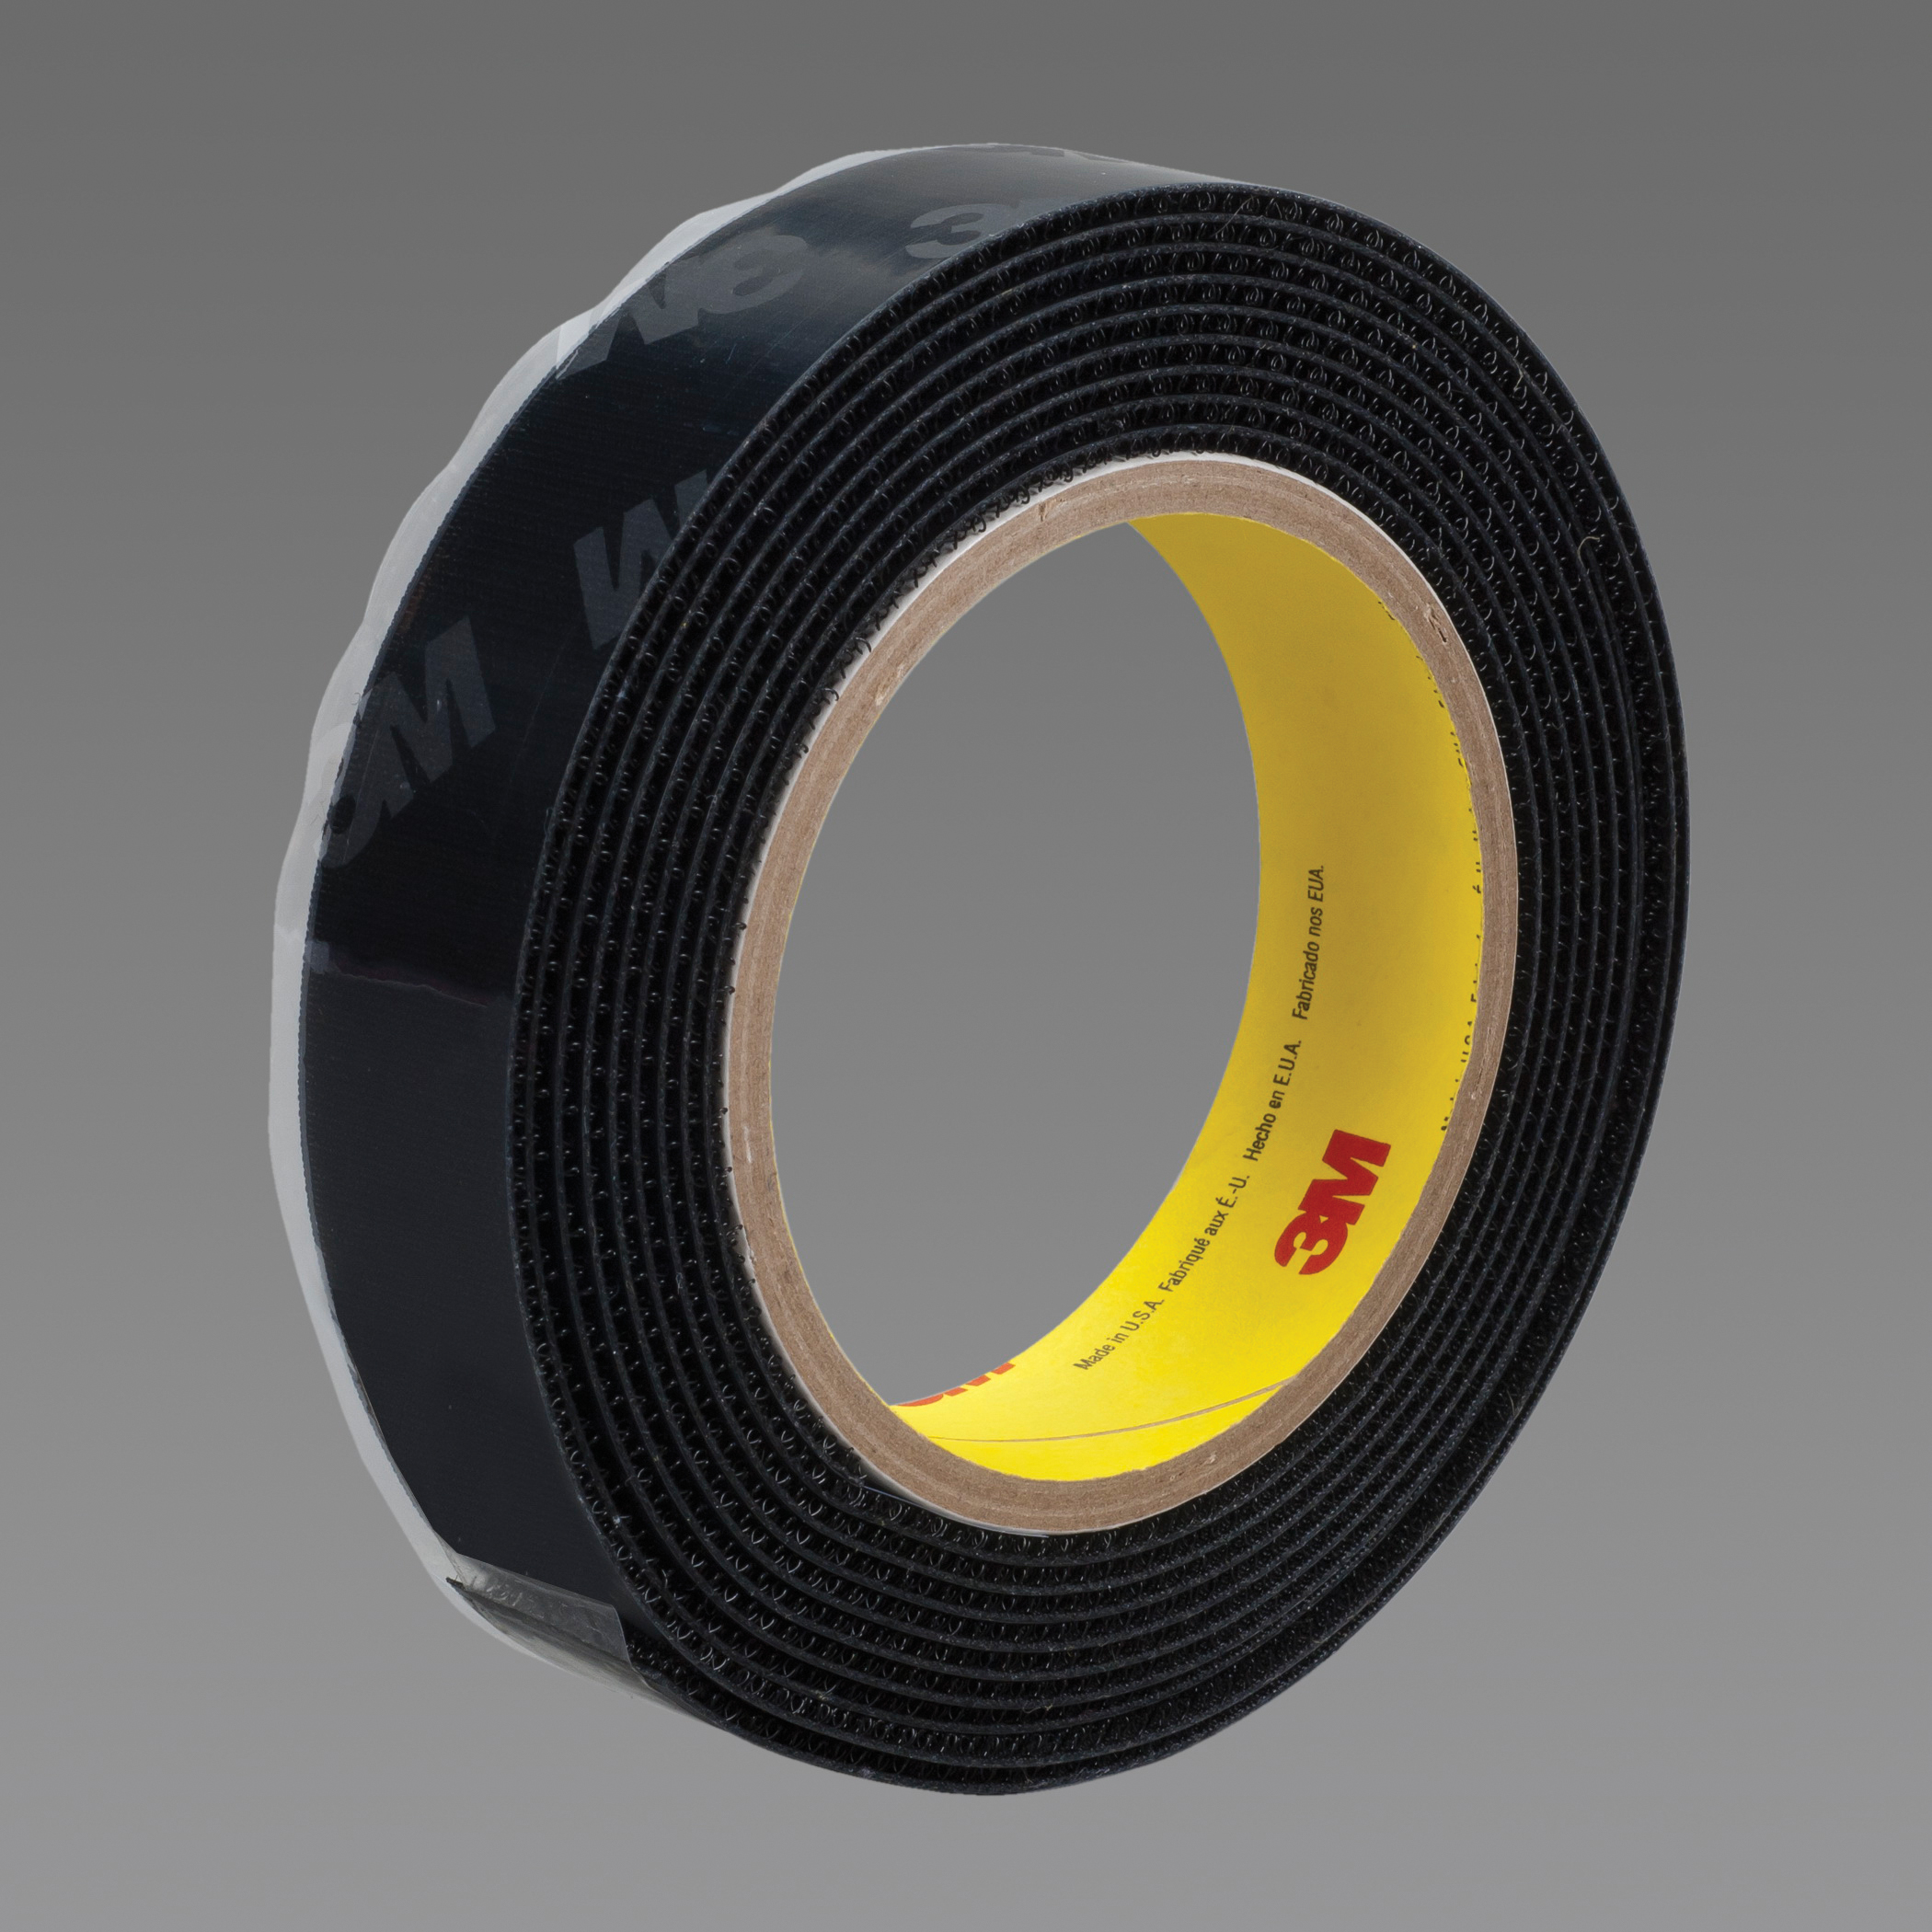 3M™ 021200-65613 General Performance Reclosable Hook Fastener Tape, 50 yd L x 1 in W, 0.15 in THK Engaged, High Tack Rubber Adhesive, Woven Nylon Backing, Black